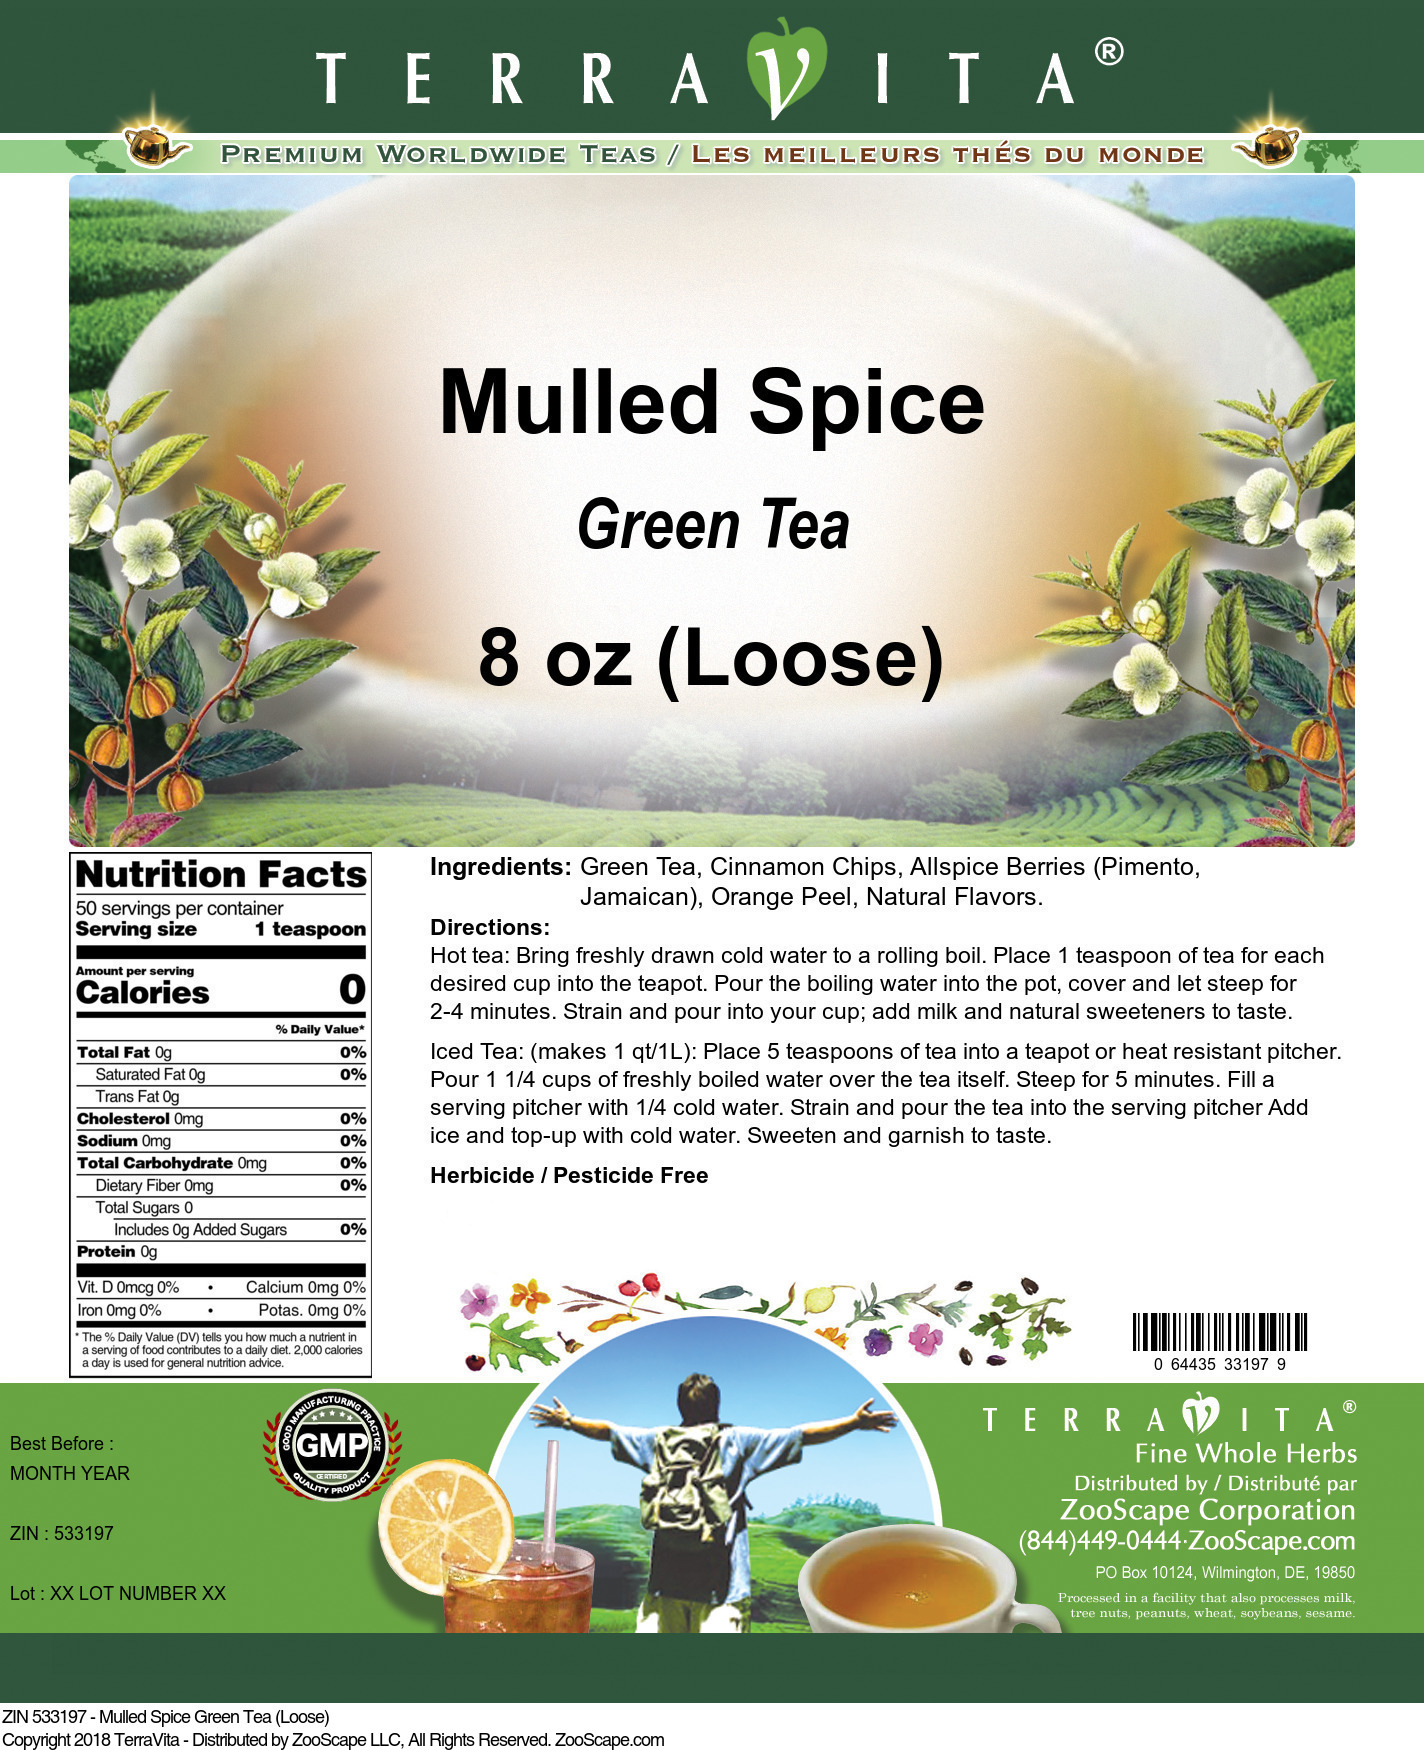 Mulled Spice Green Tea (Loose)